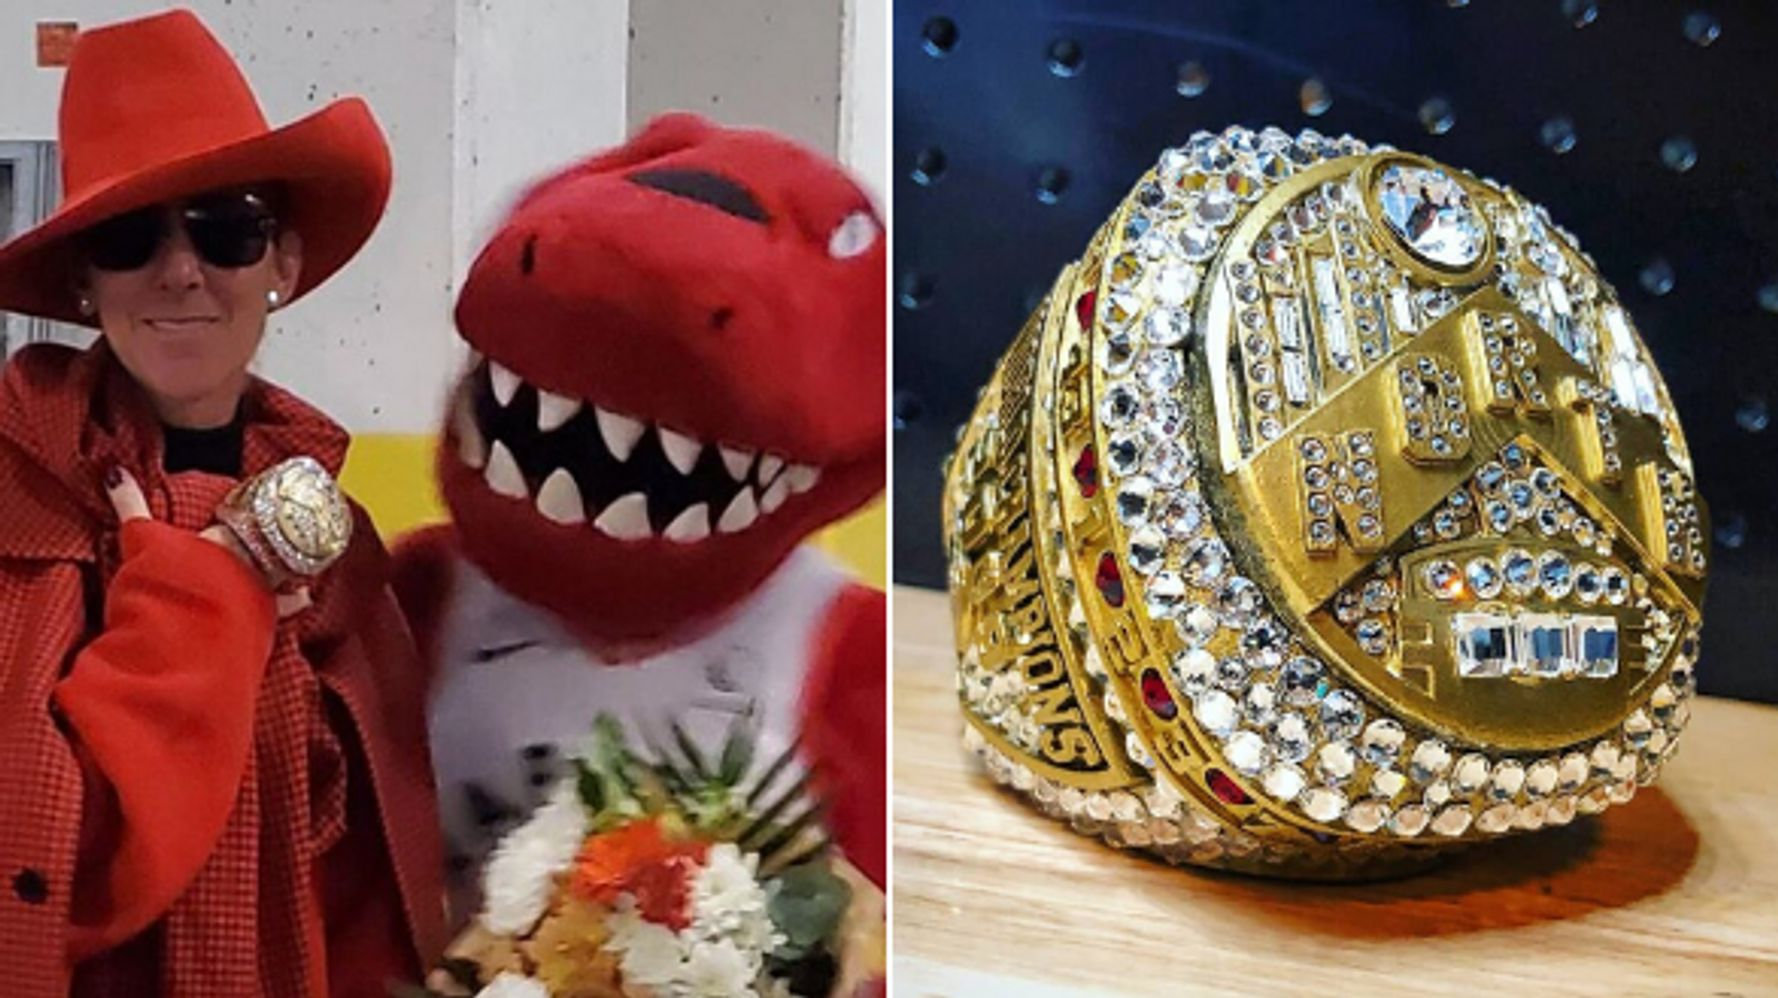 Céline Dion's Raptors Ring Was Designed By A Mascot Engineer